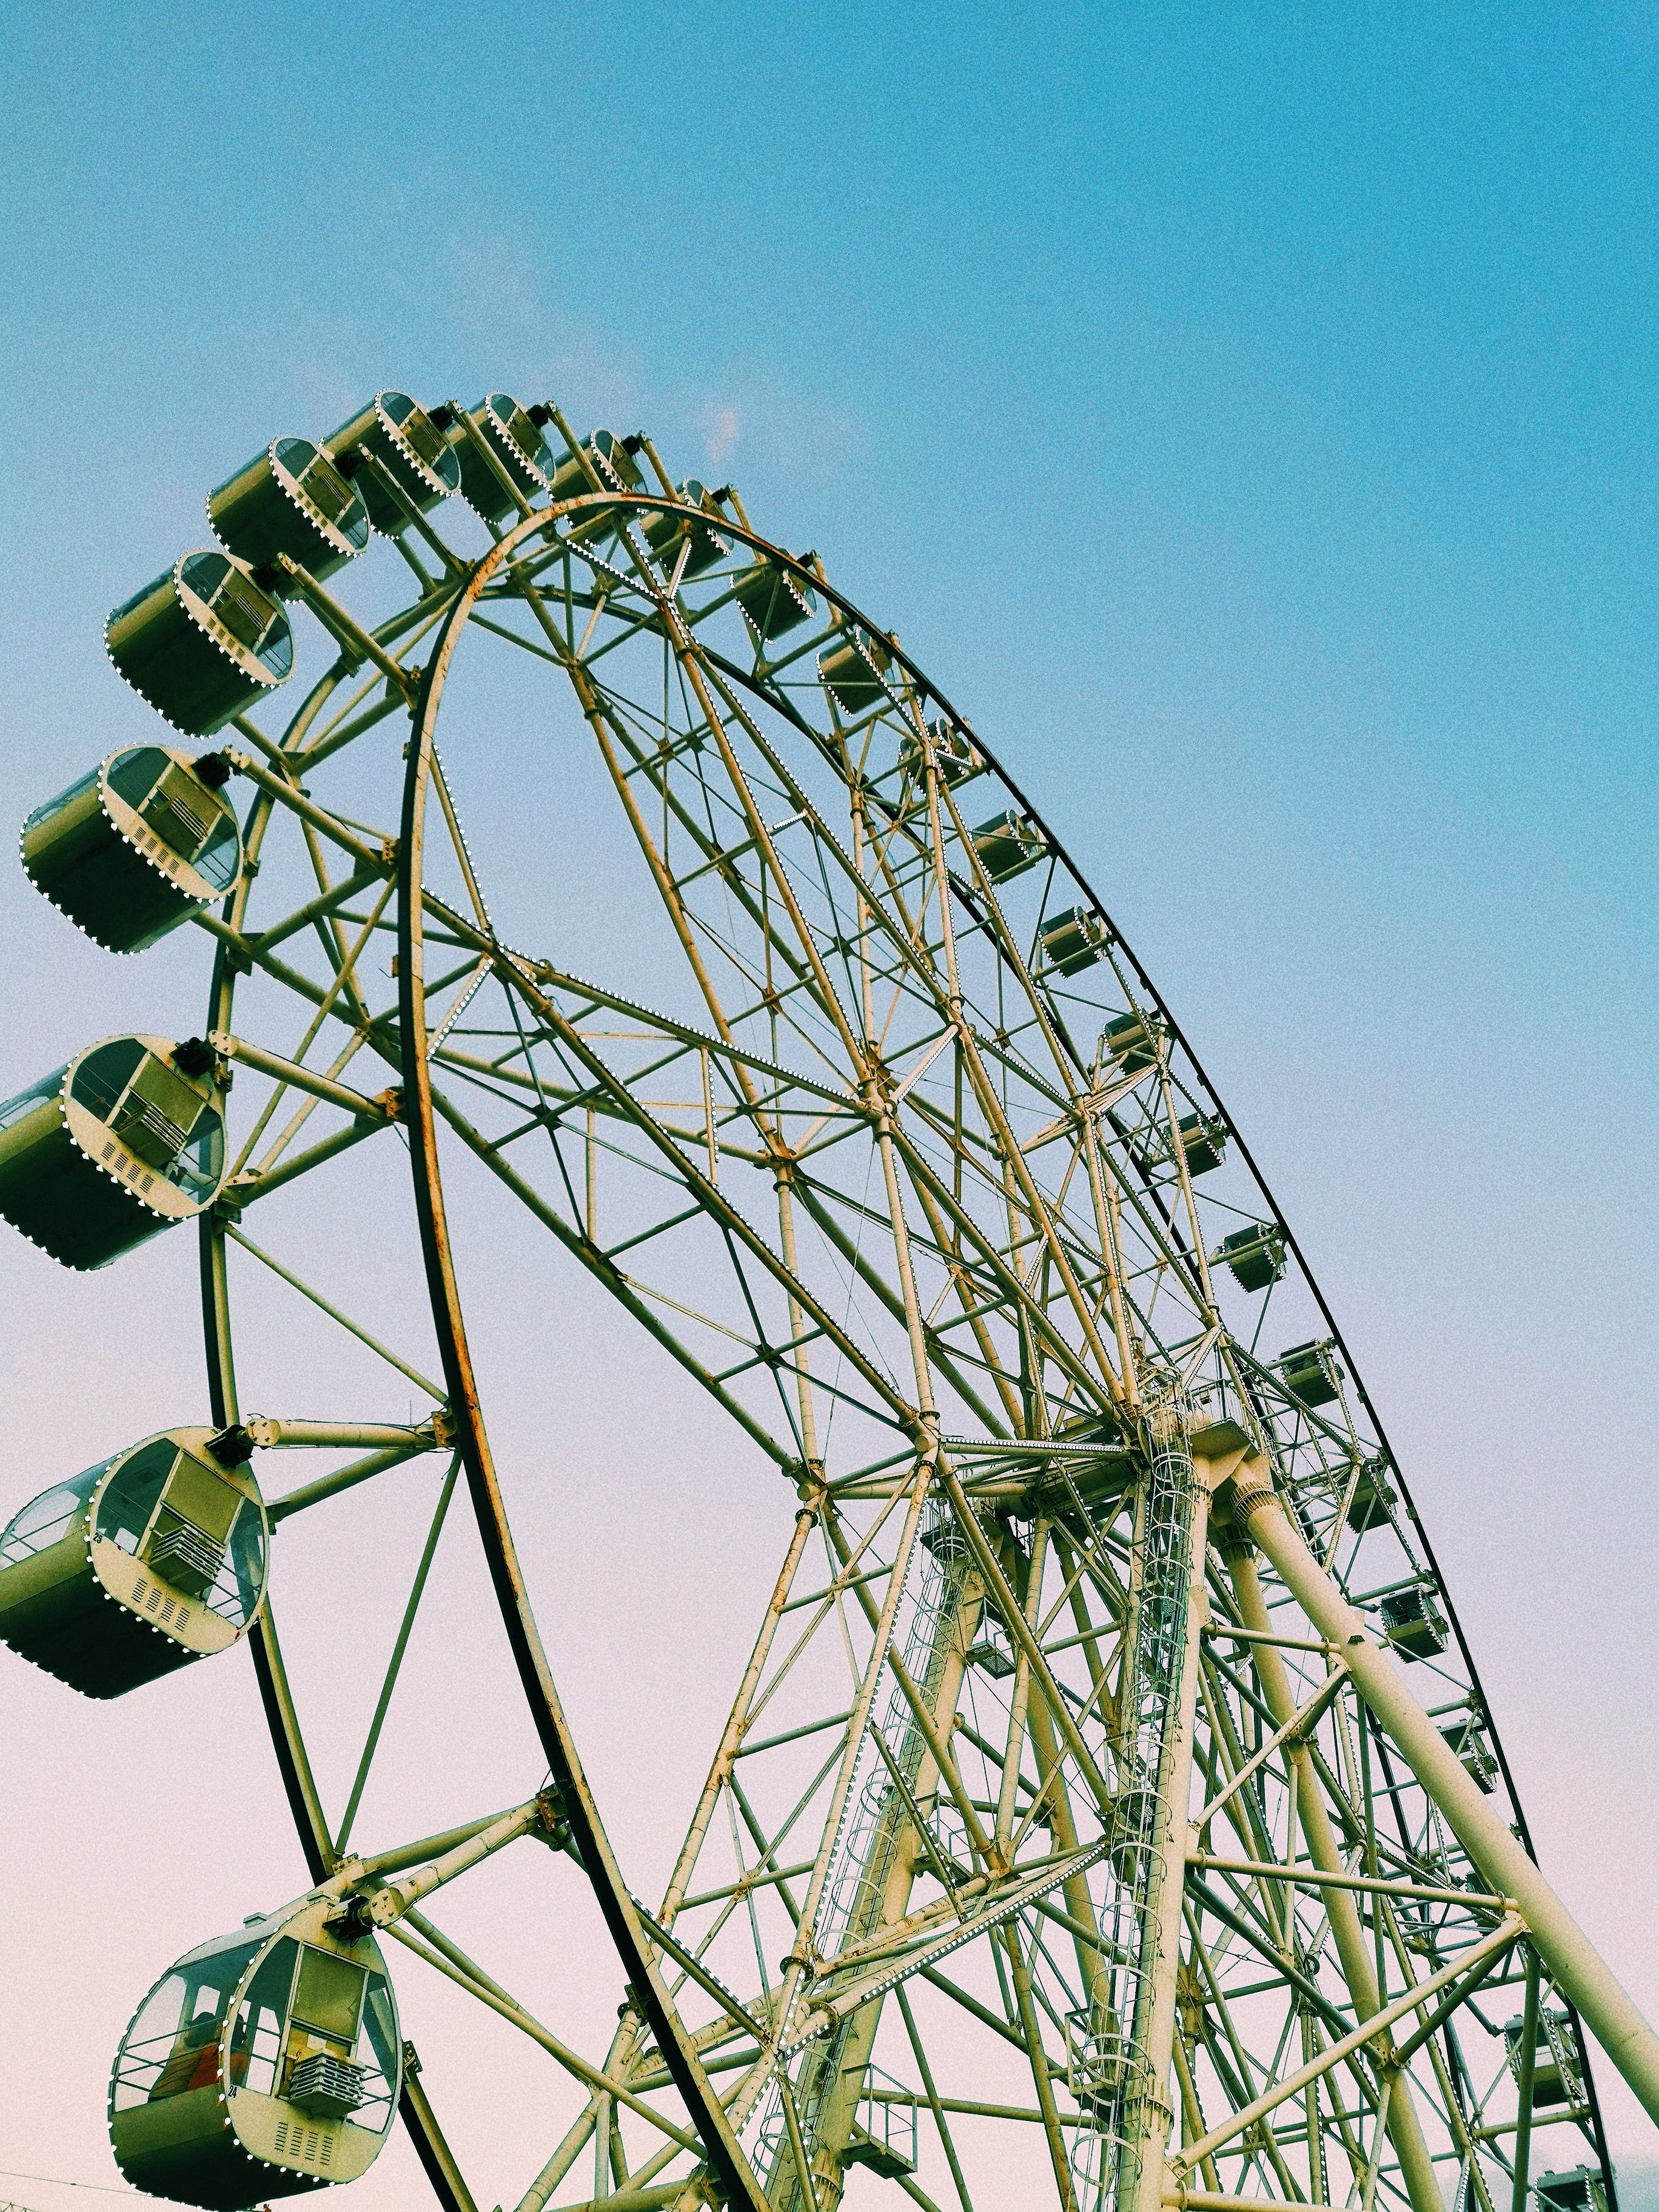 Close up Photograph of Ferris Wheel